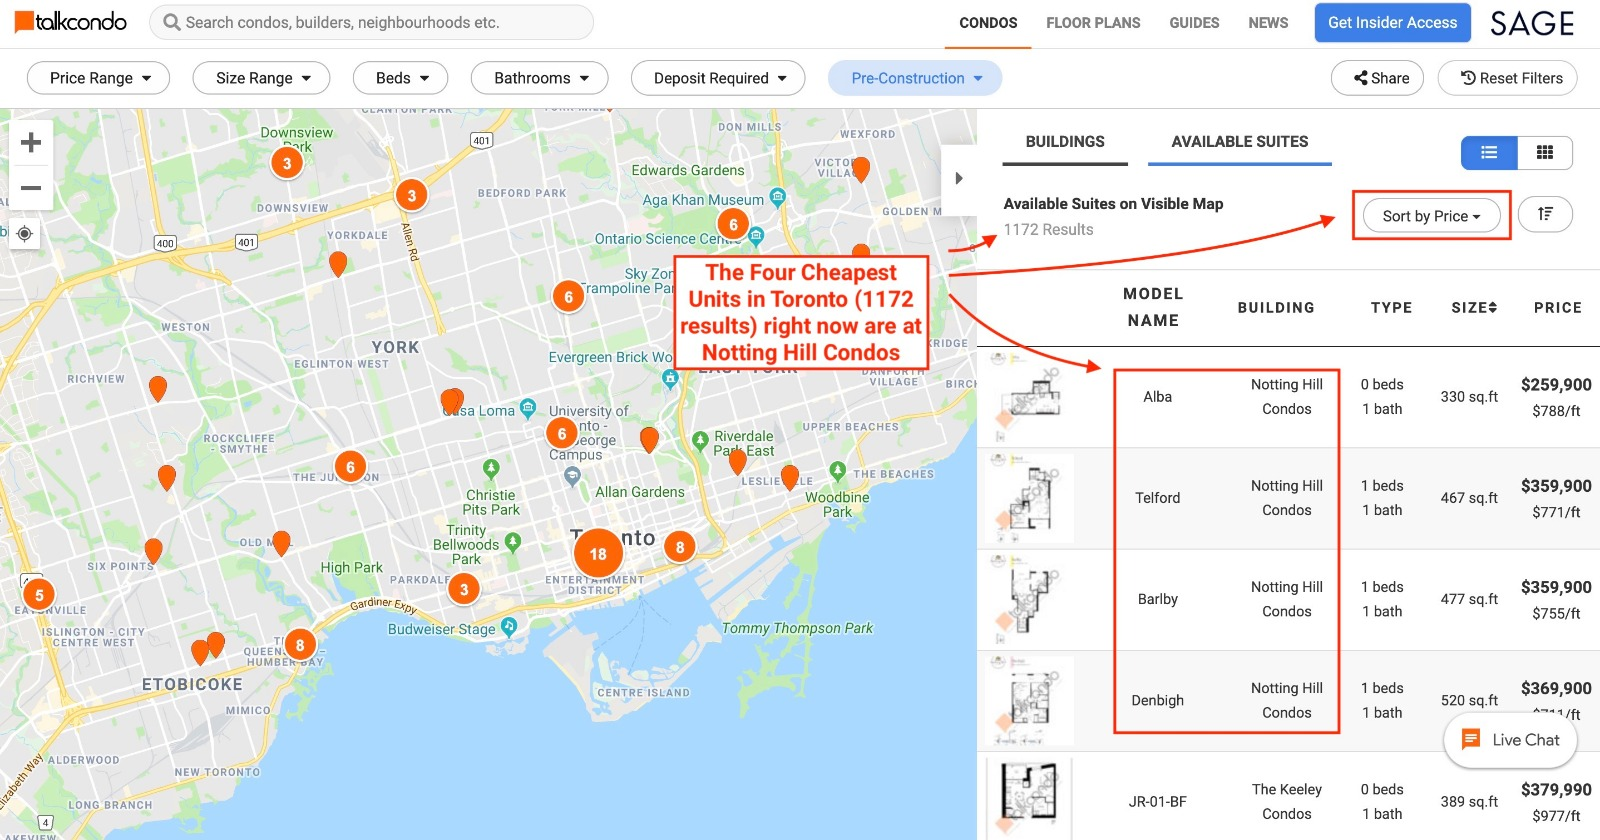 map data showing notting hill as the cheapest condo options in toronto